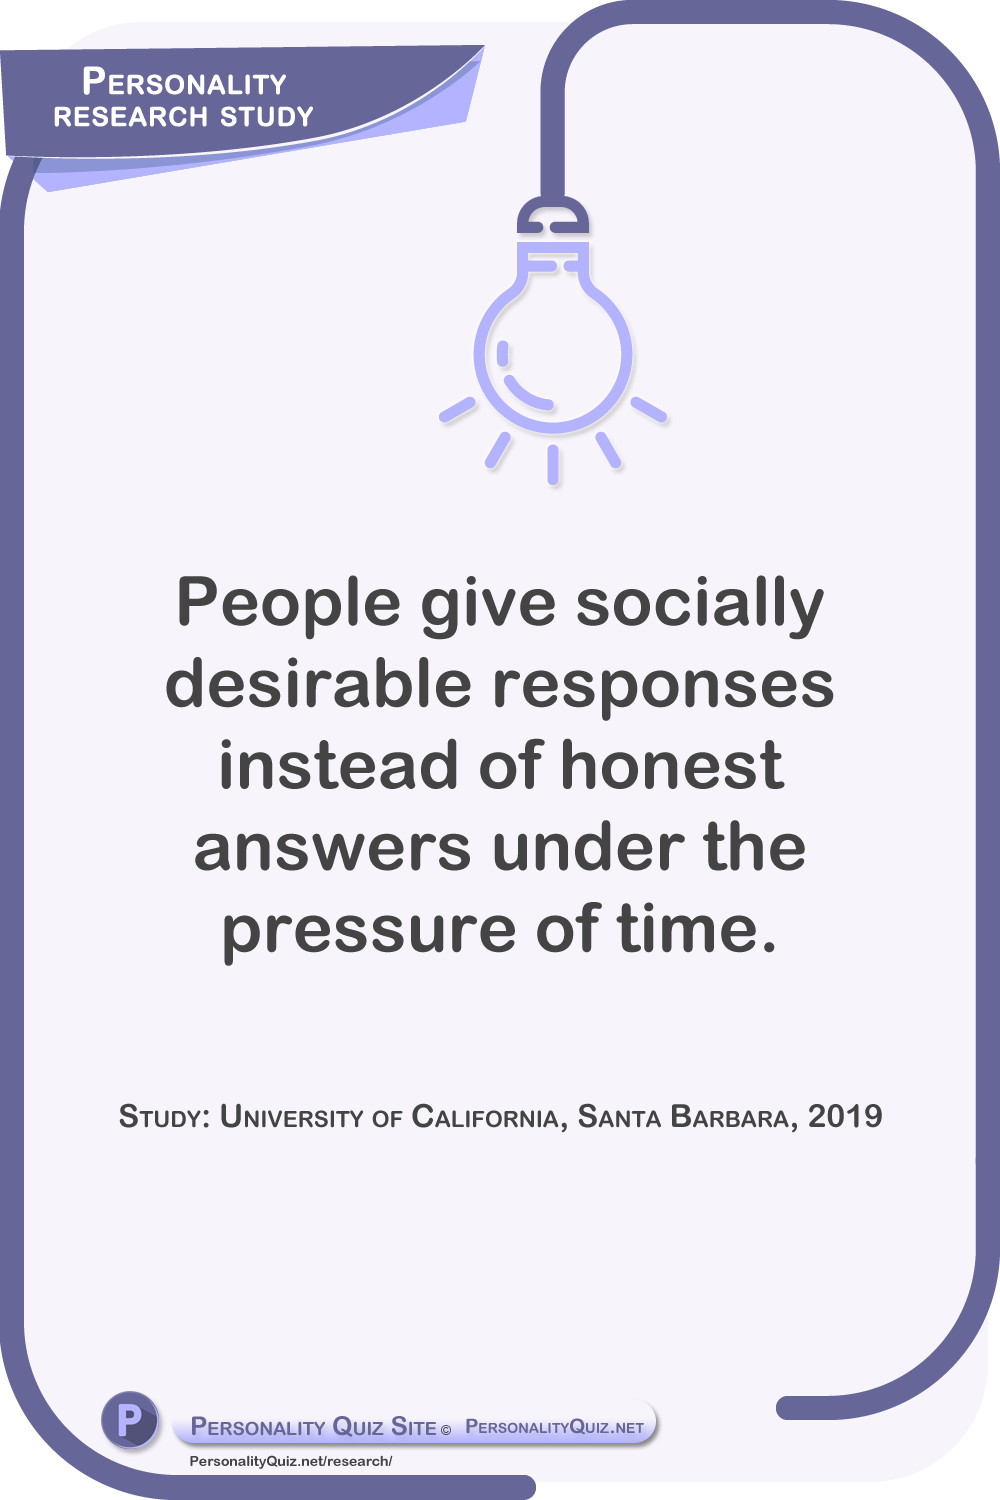 People give socially desirable responses instead of honest answers under the pressure of time. Study: University of California, Santa Barbara, 2019